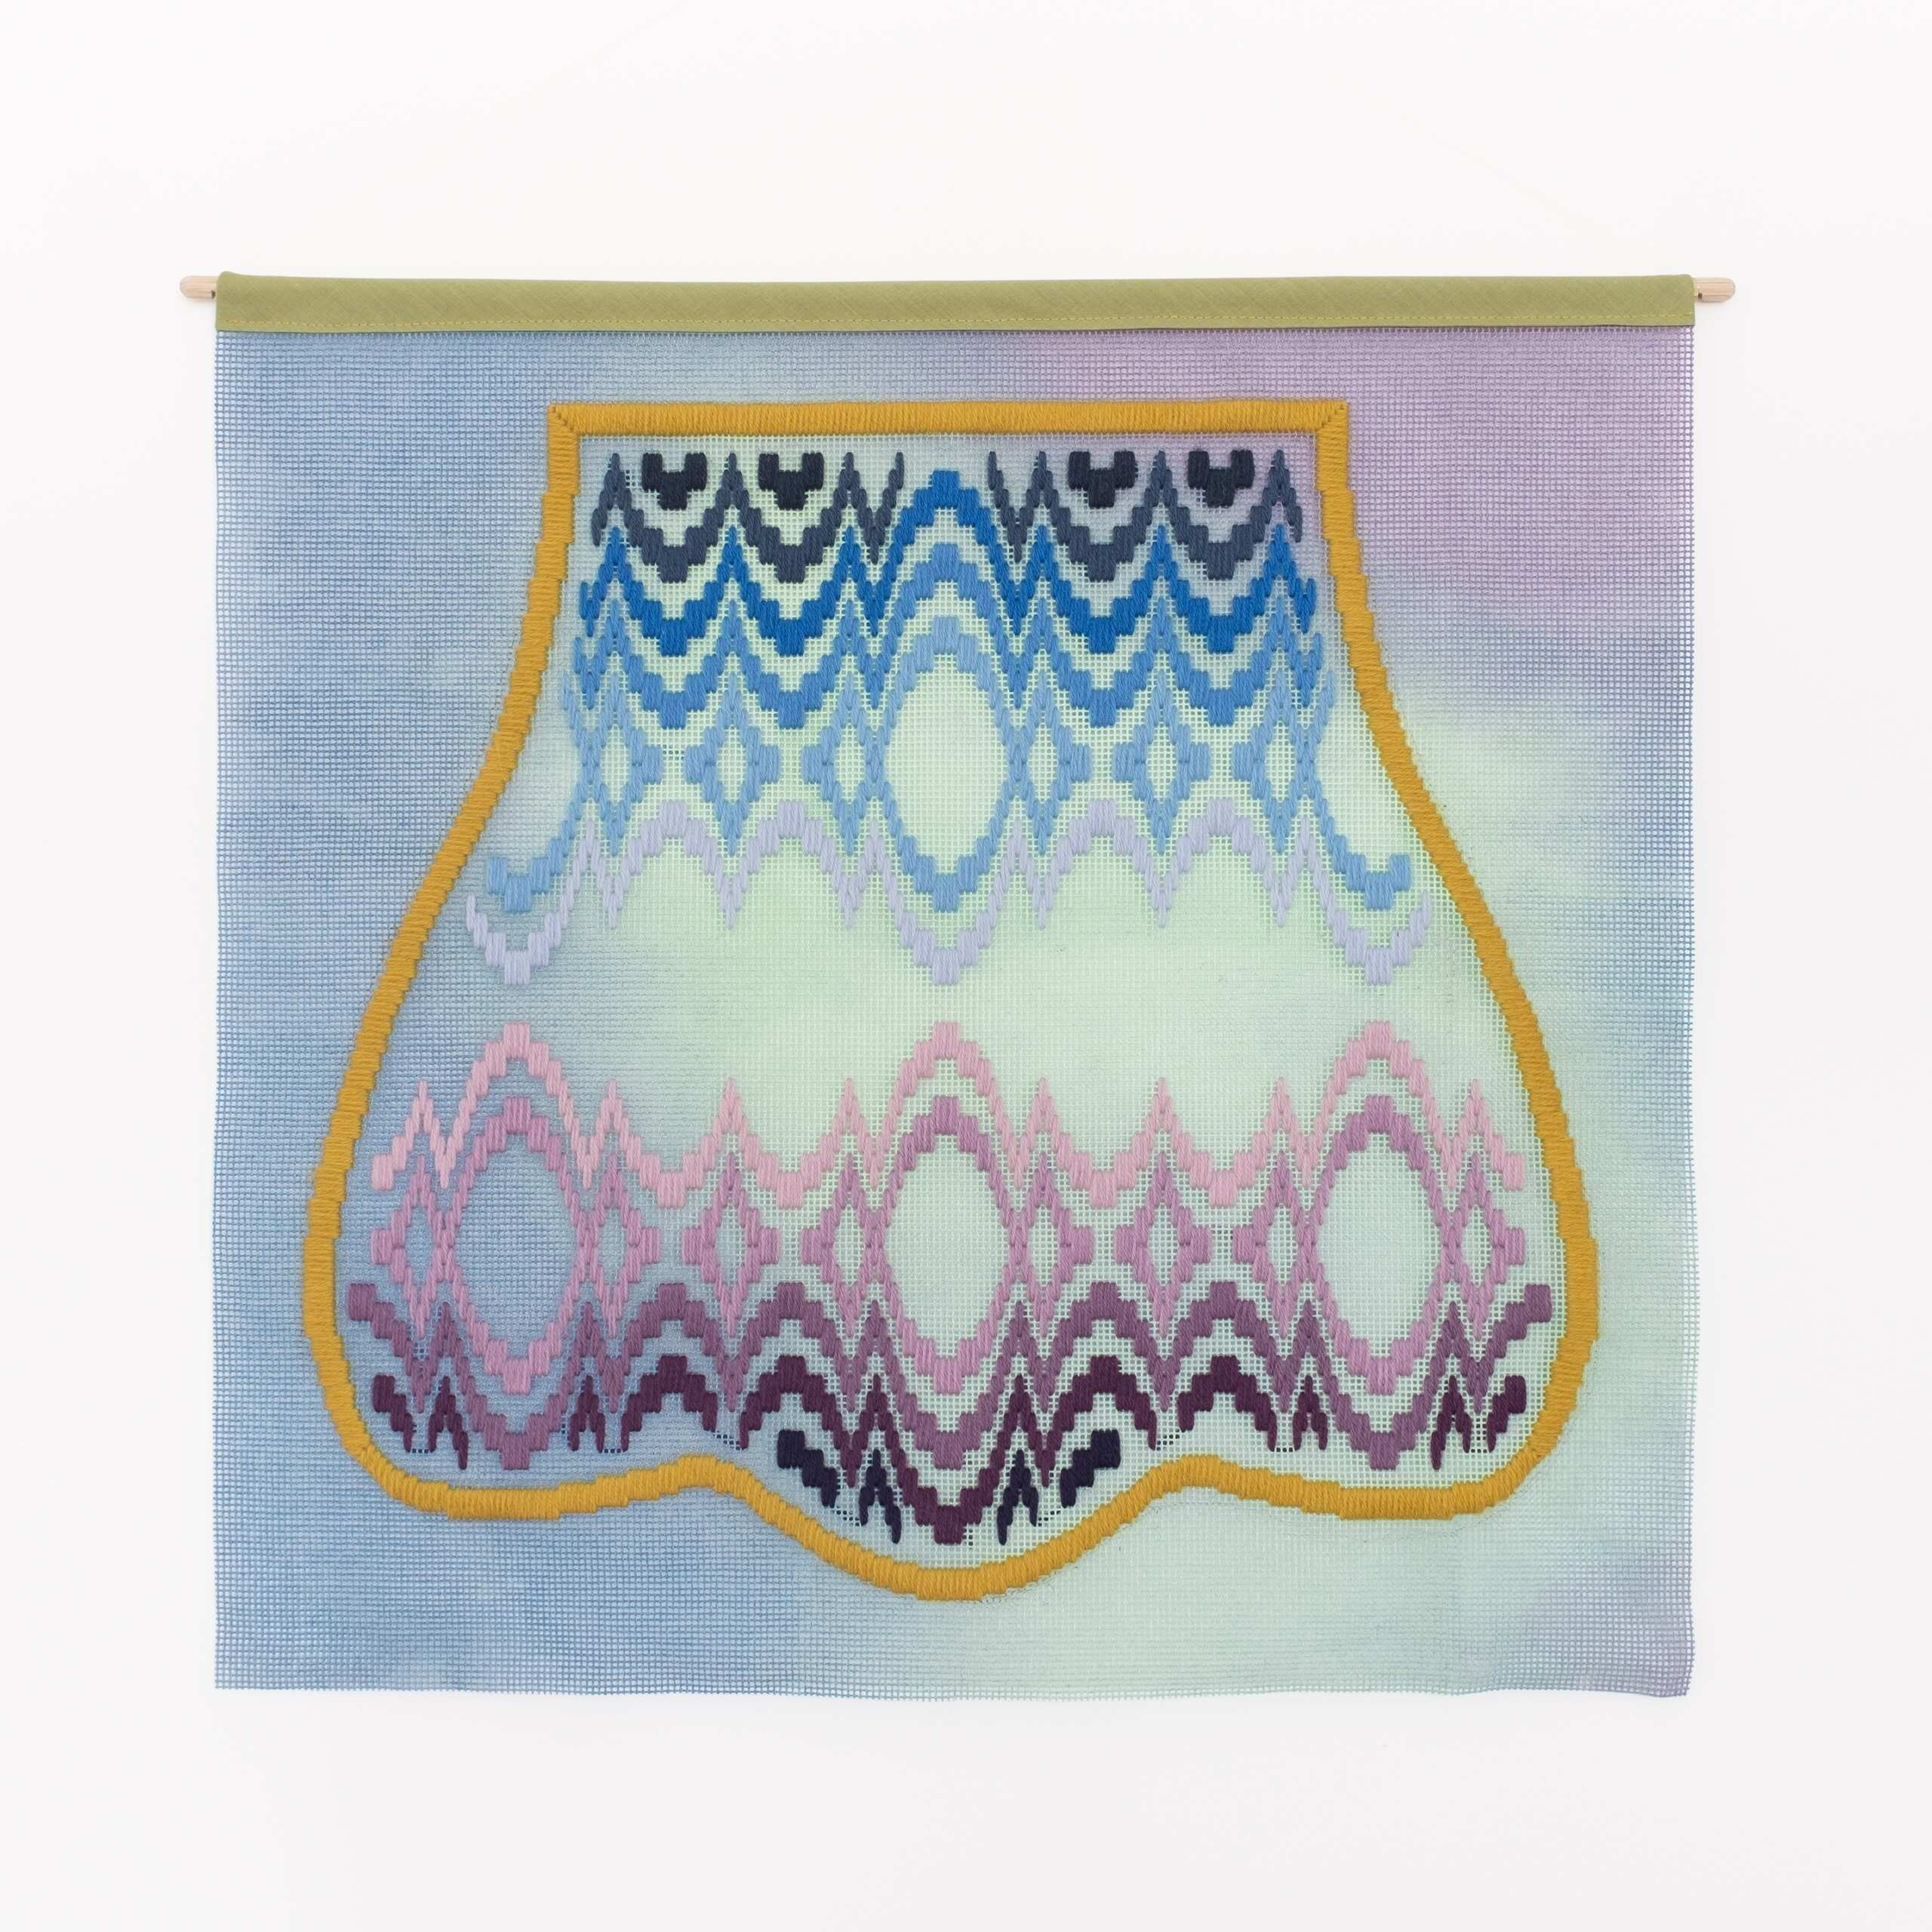 Bloomsbury (scallop chair), Hand-embroidered wool yarn and acrylic paint on canvas, 2021